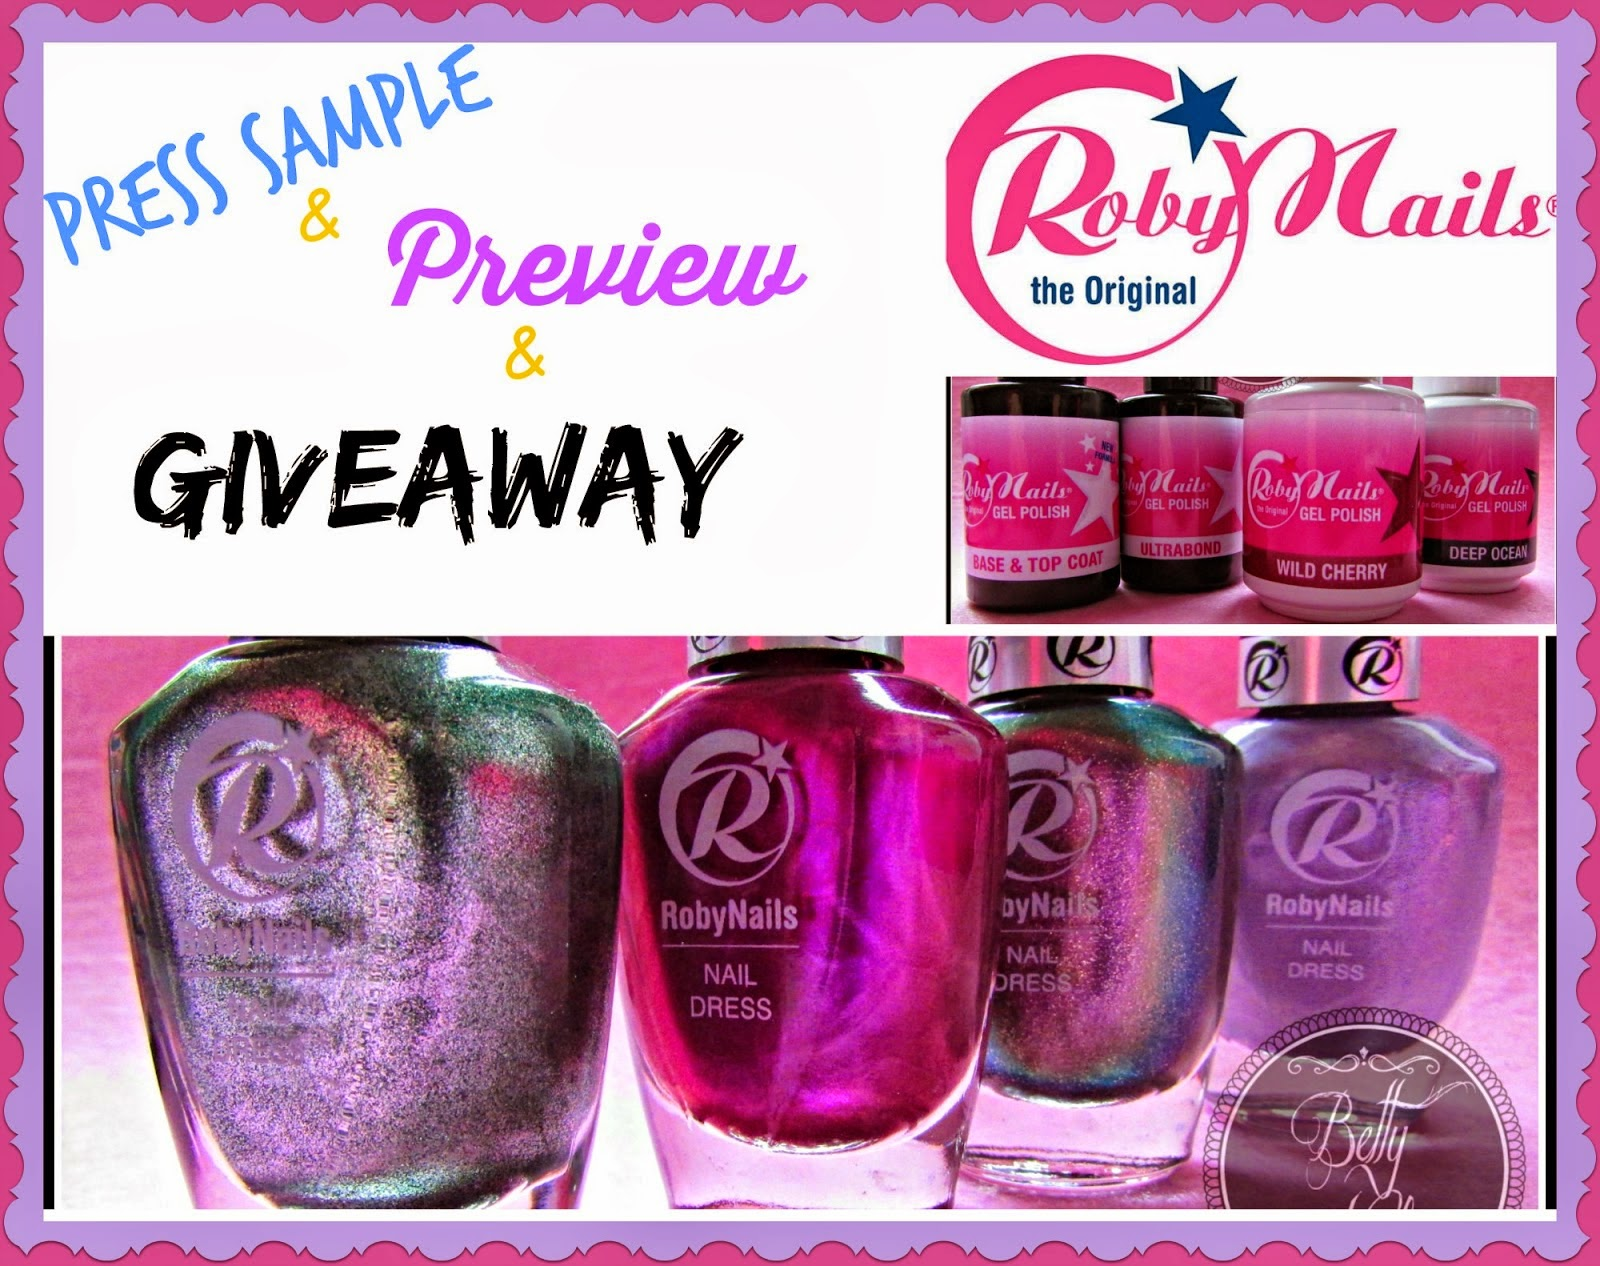 Roby Nails PREVIEW and GIVEAWAY